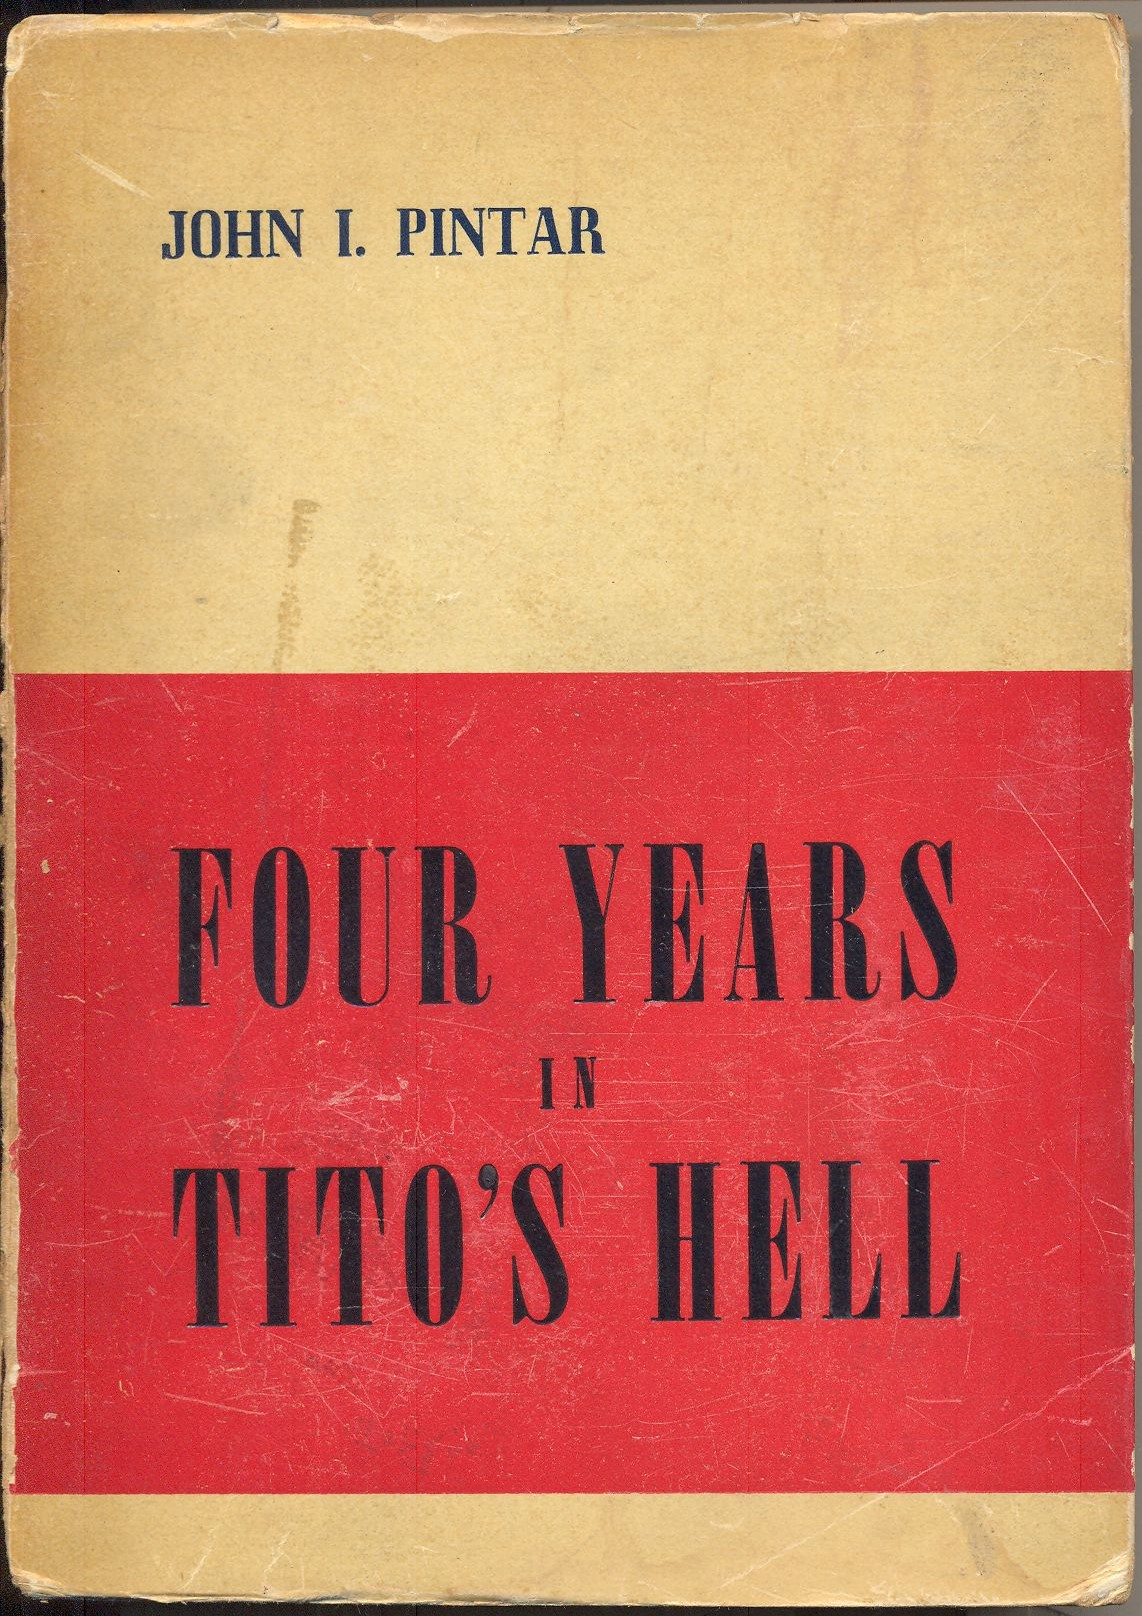 John Pintar. Four years in Tito's hell, 1954. Book cover